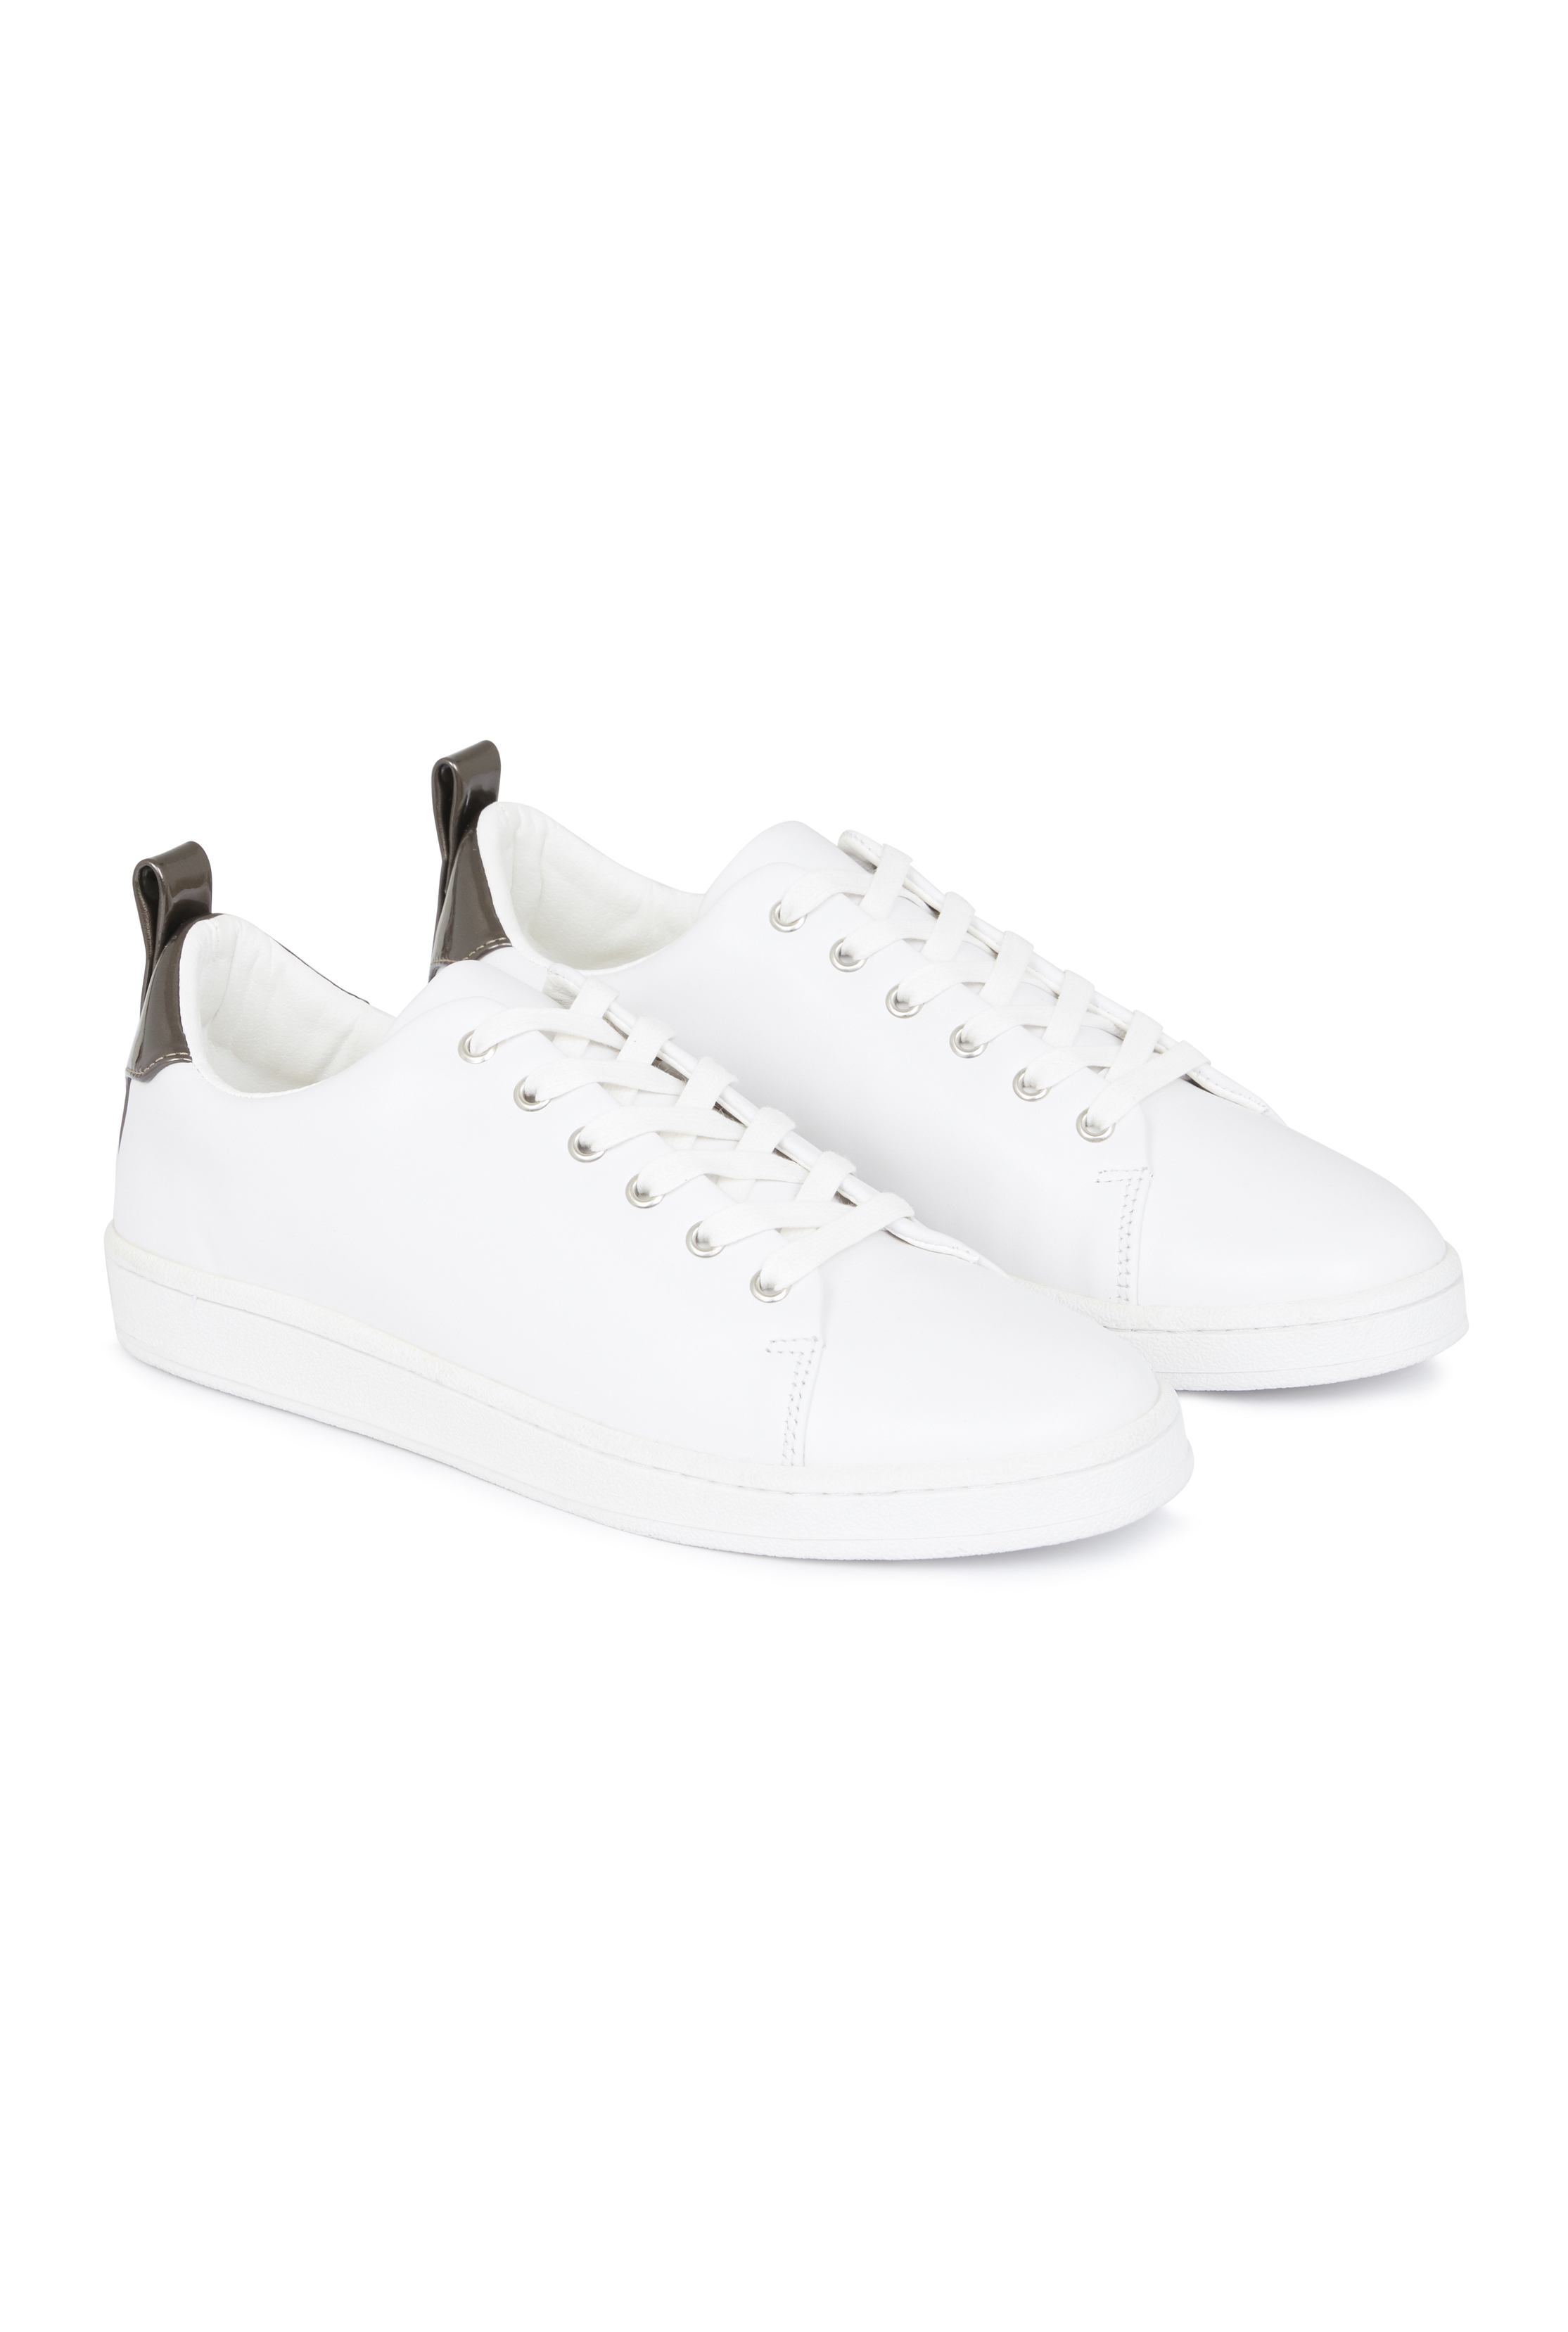 LTS Veronica Leather Lace Up Trainer